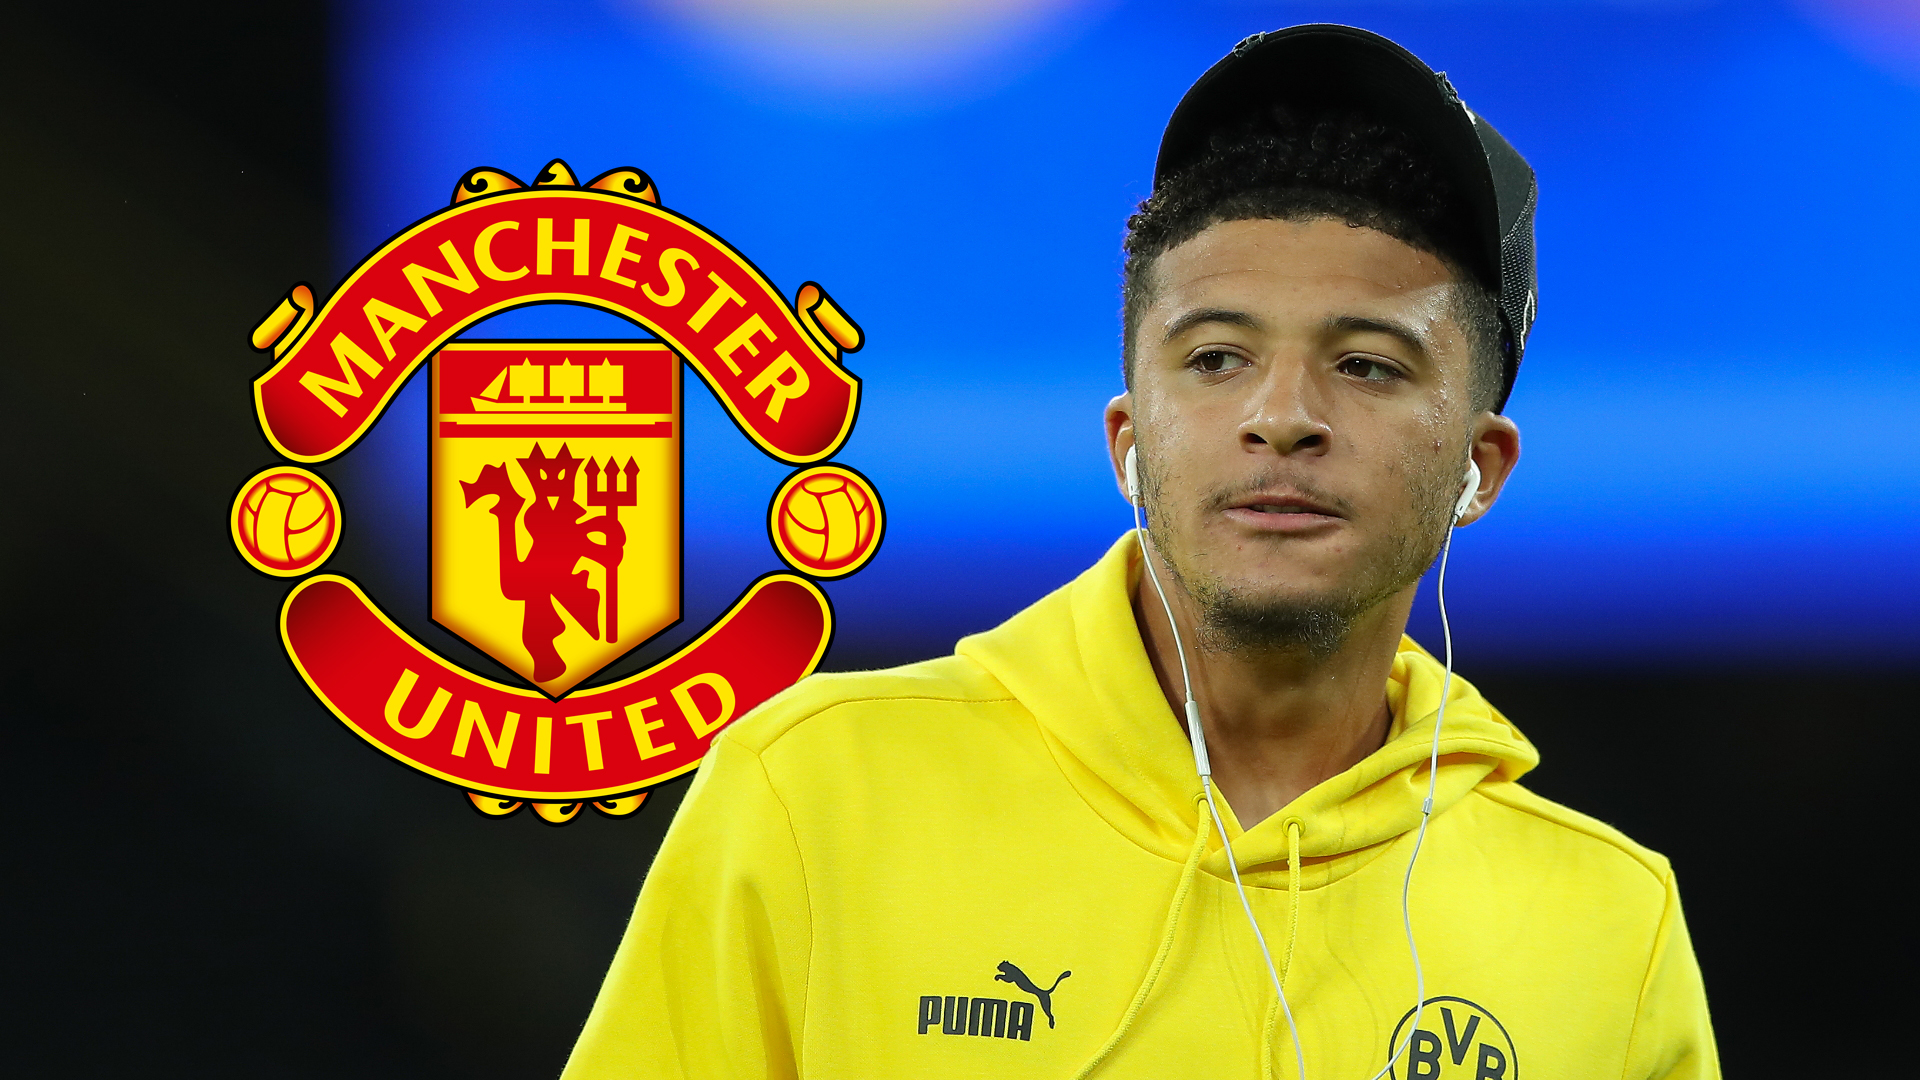 'Hopefully we can all play together' - Man Utd star Rashford issues plea for Sancho to join Red Devils